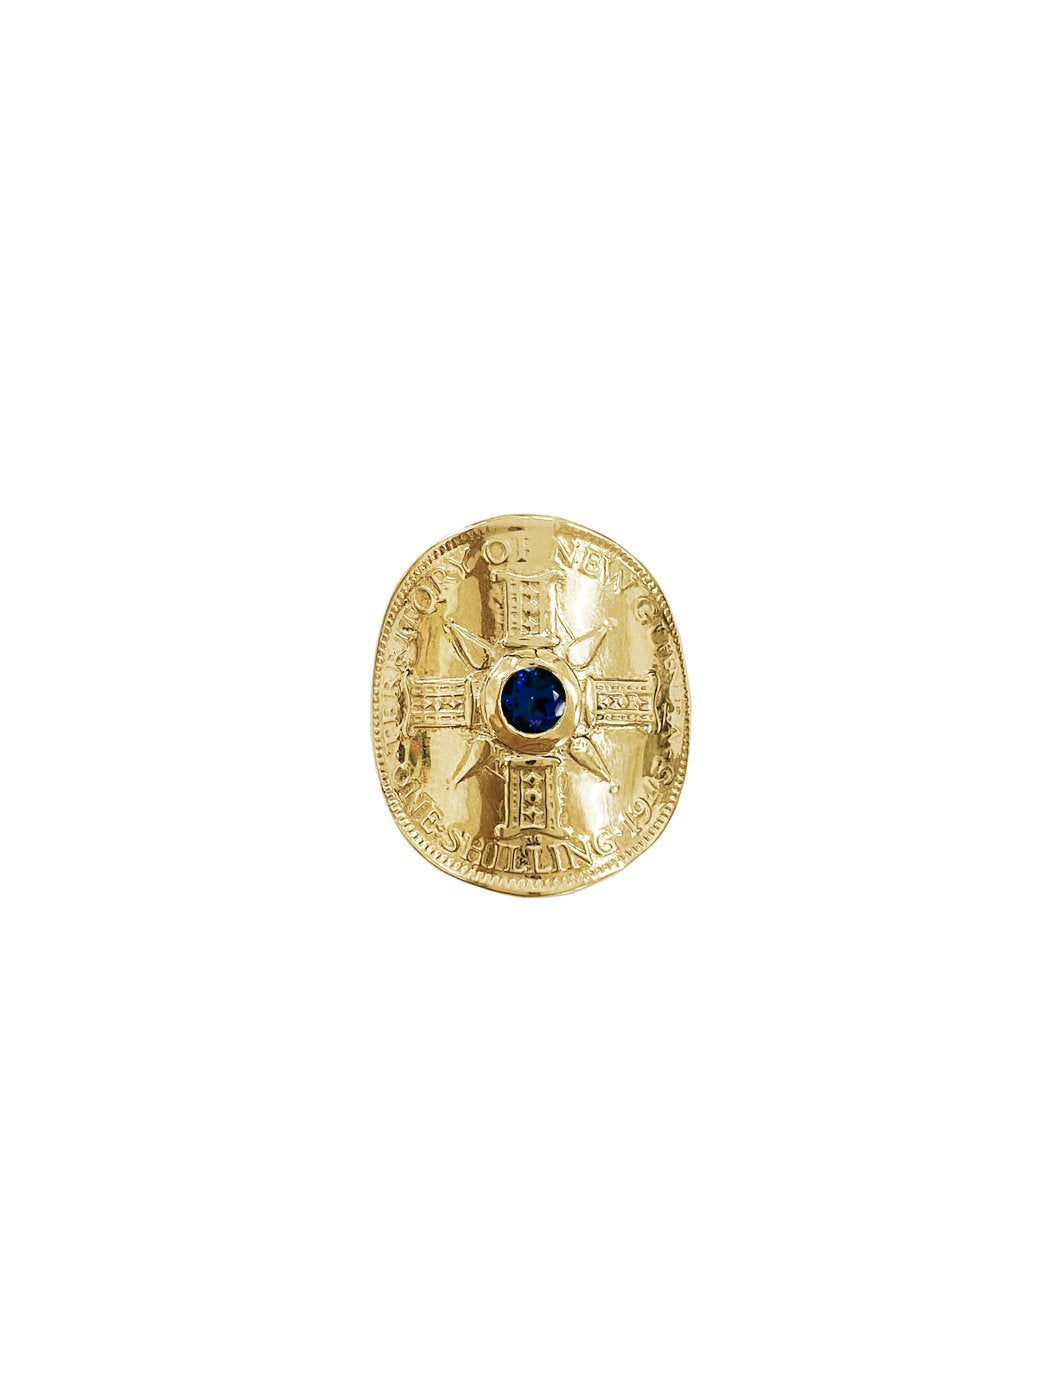 Fiorina Jewellery Gold PNG Bent Coin Ring Blue Sapphire